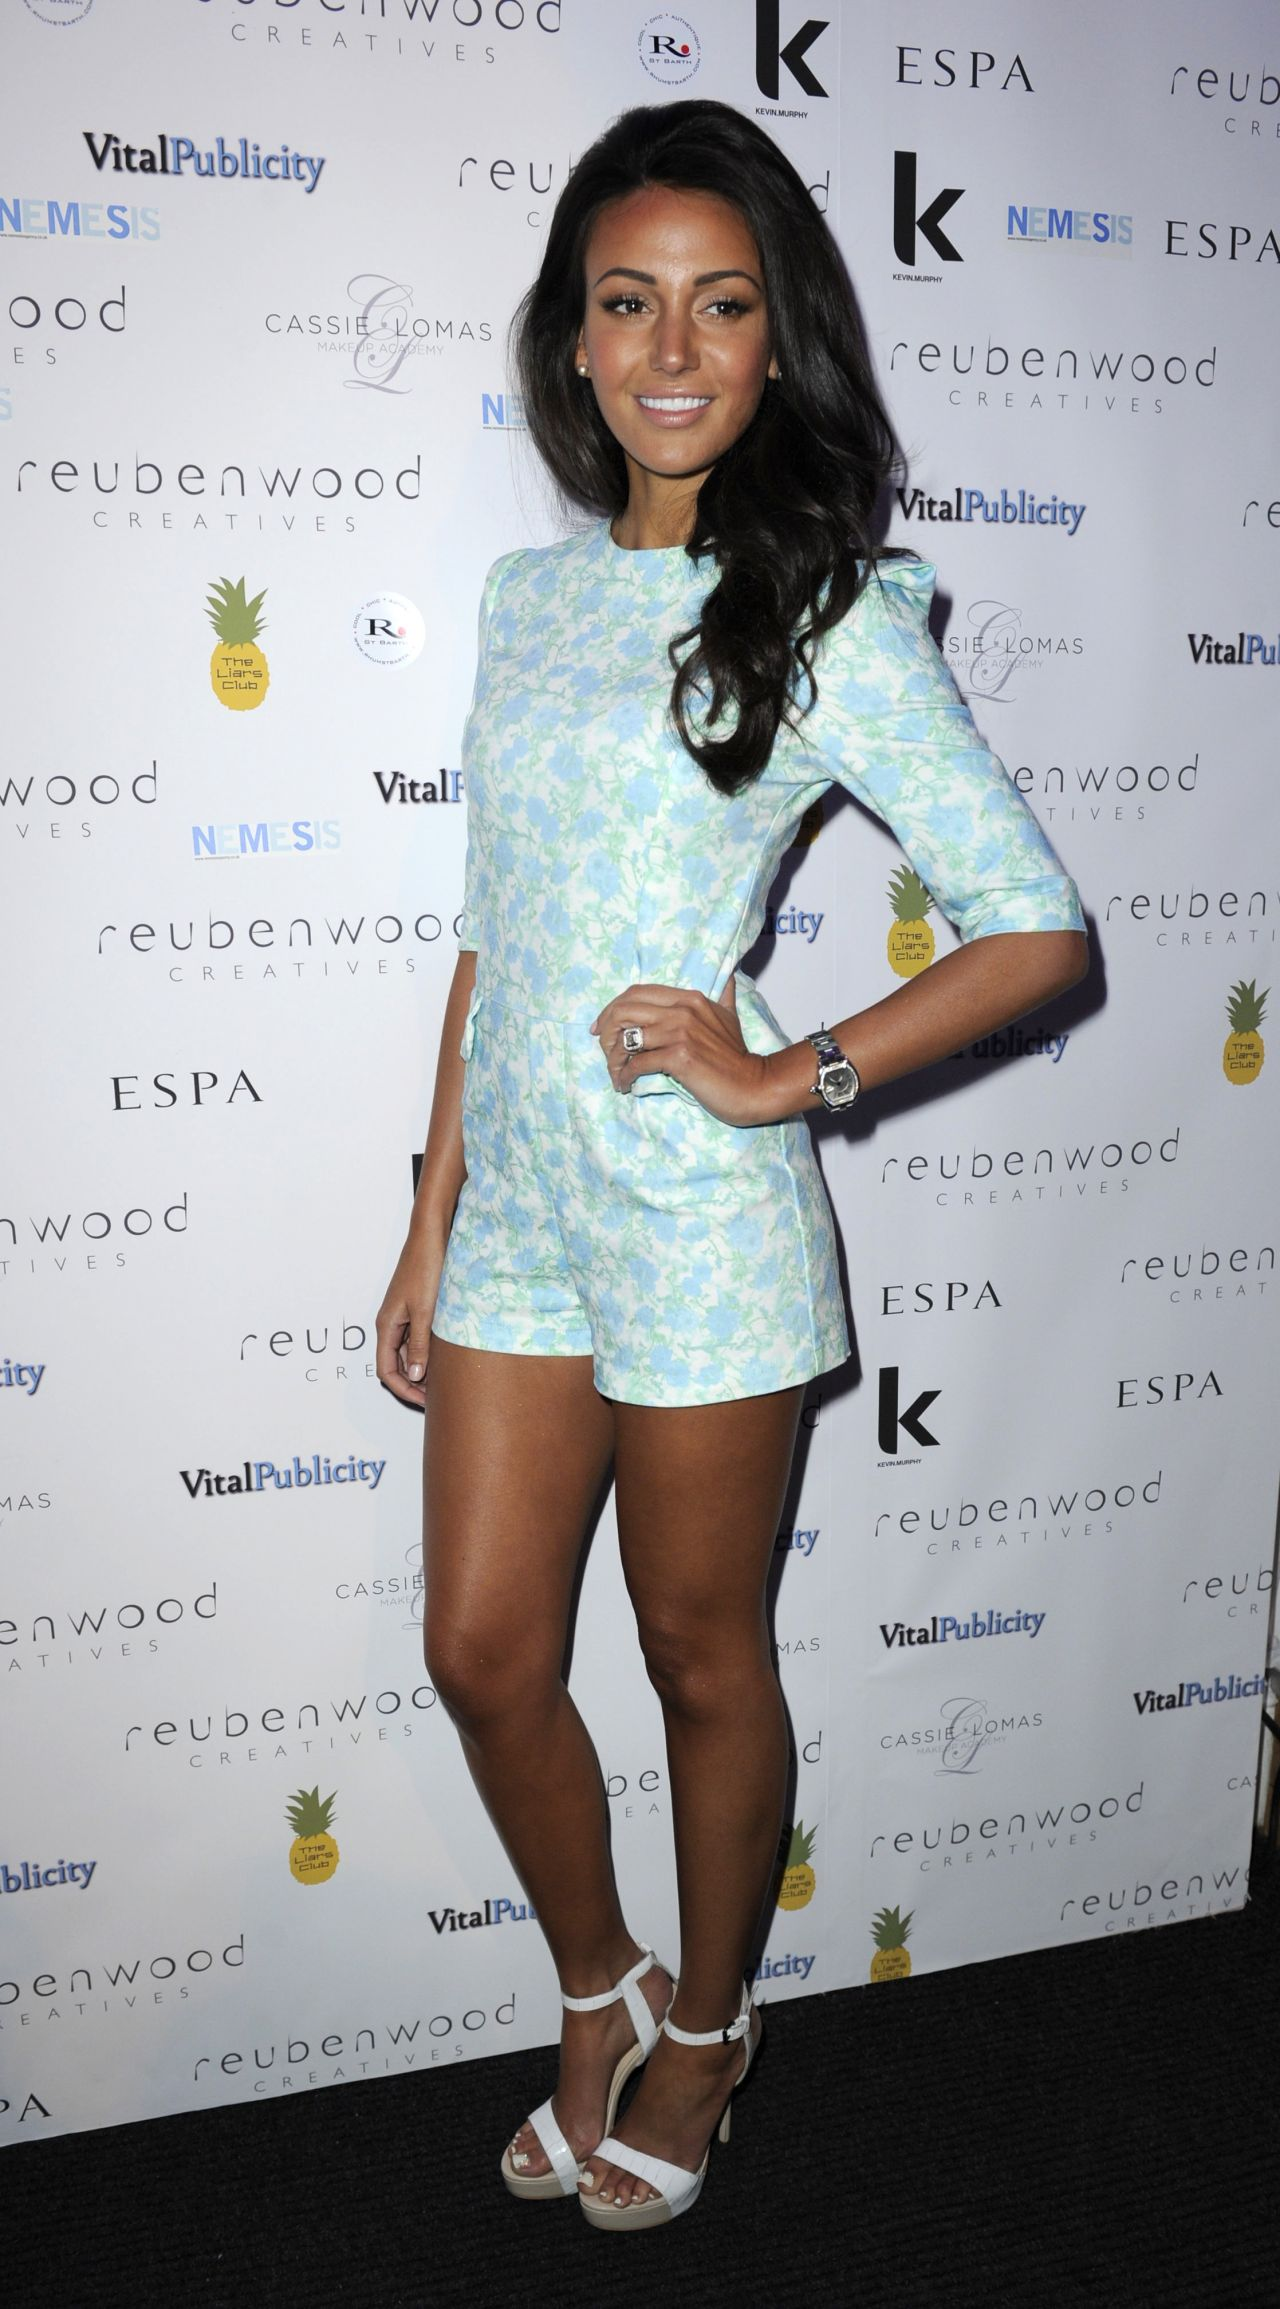 Michelle Keegan at Reuben Wood Party -Manchester, March 2014